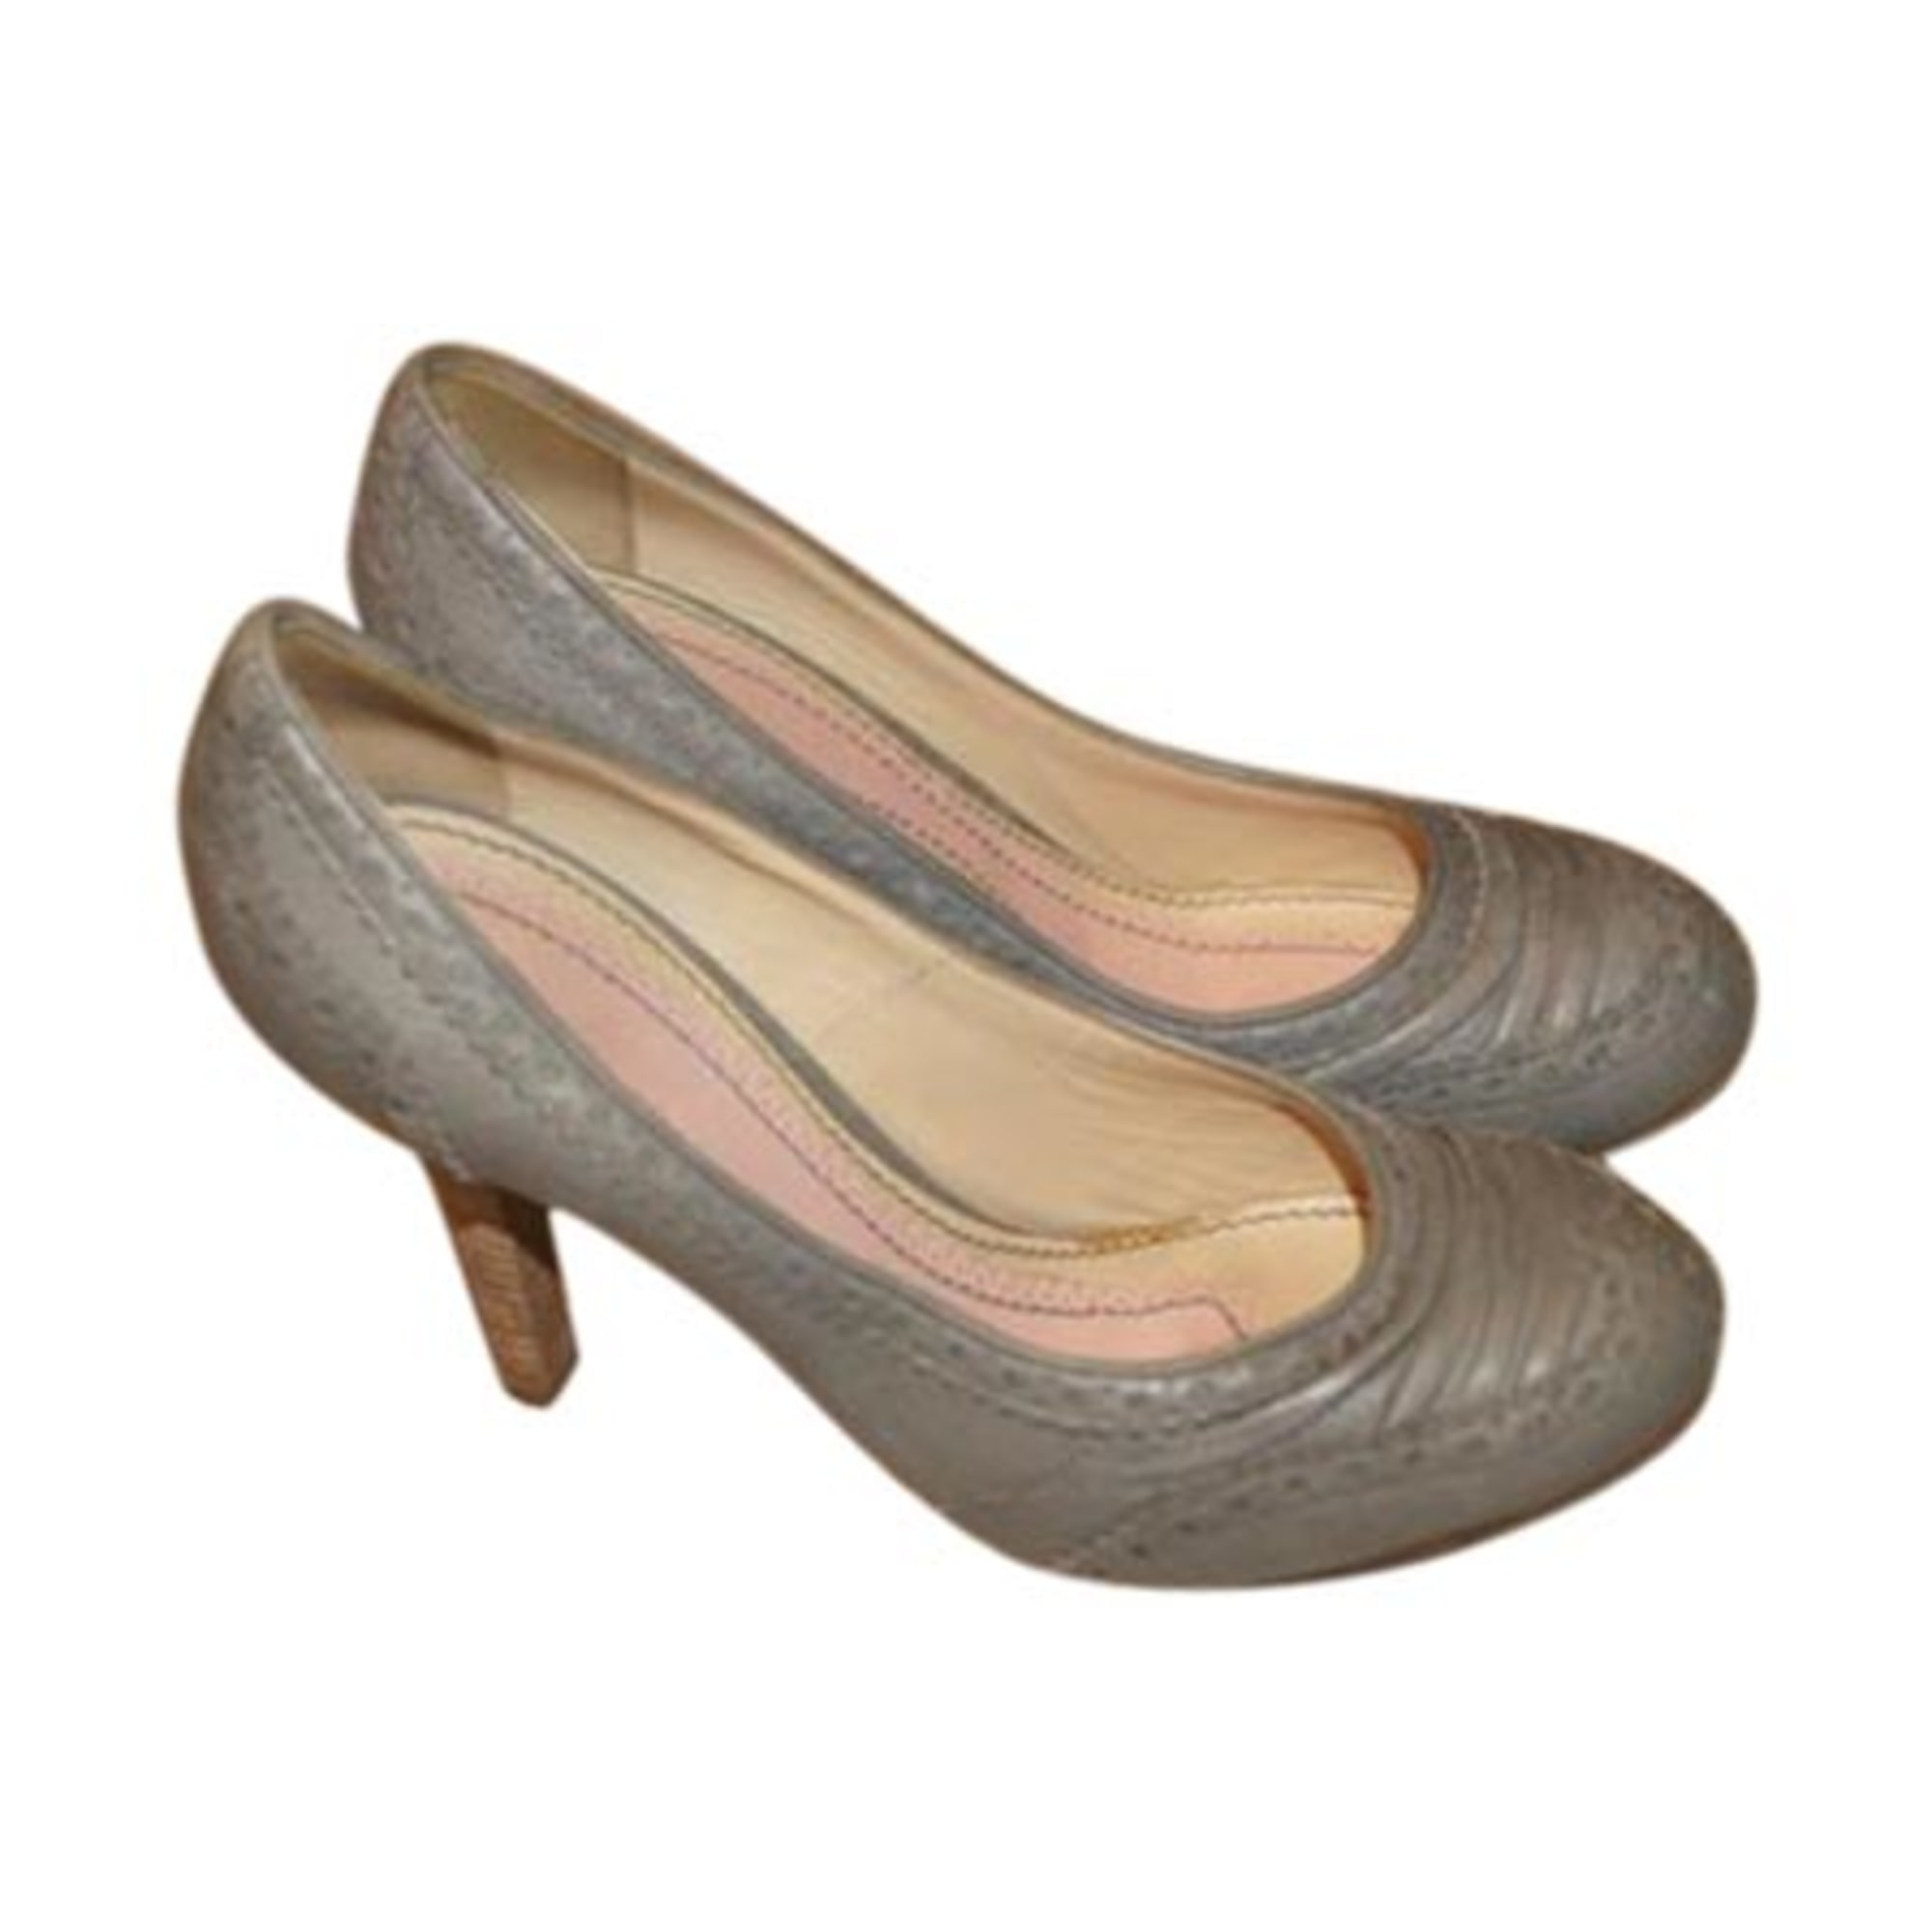 Escarpins JOHN GALLIANO Gris, anthracite